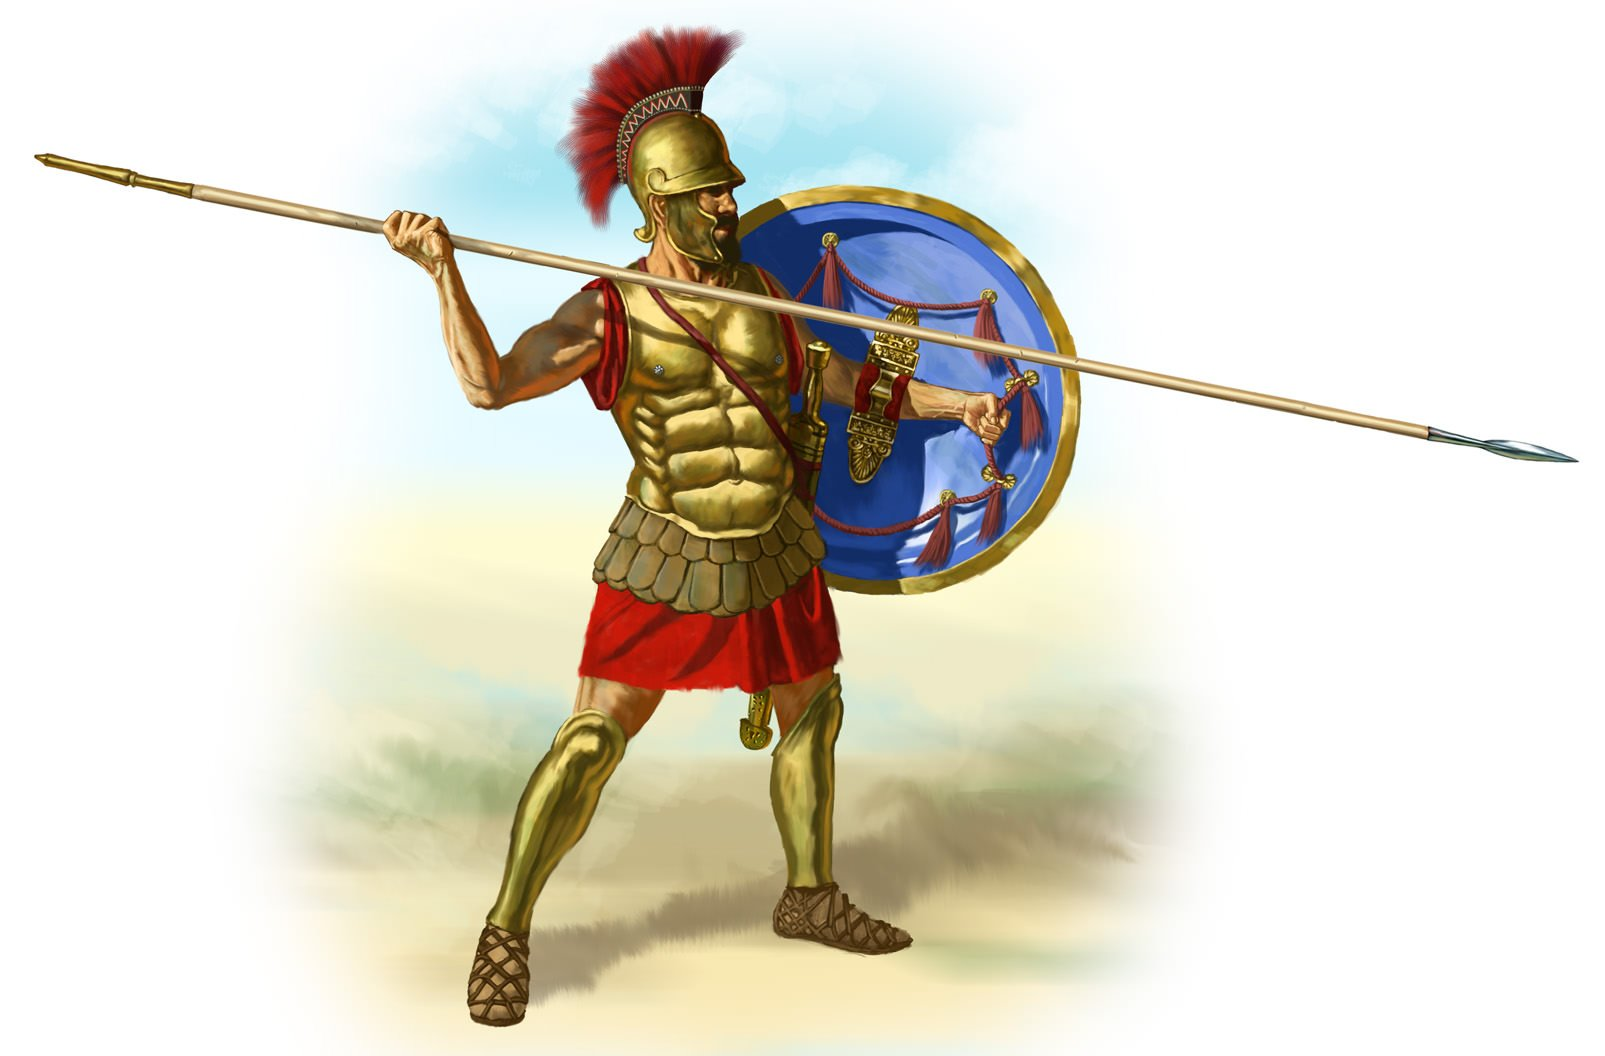 ancient greek soldier by peacetrooper2000 minecraft skin